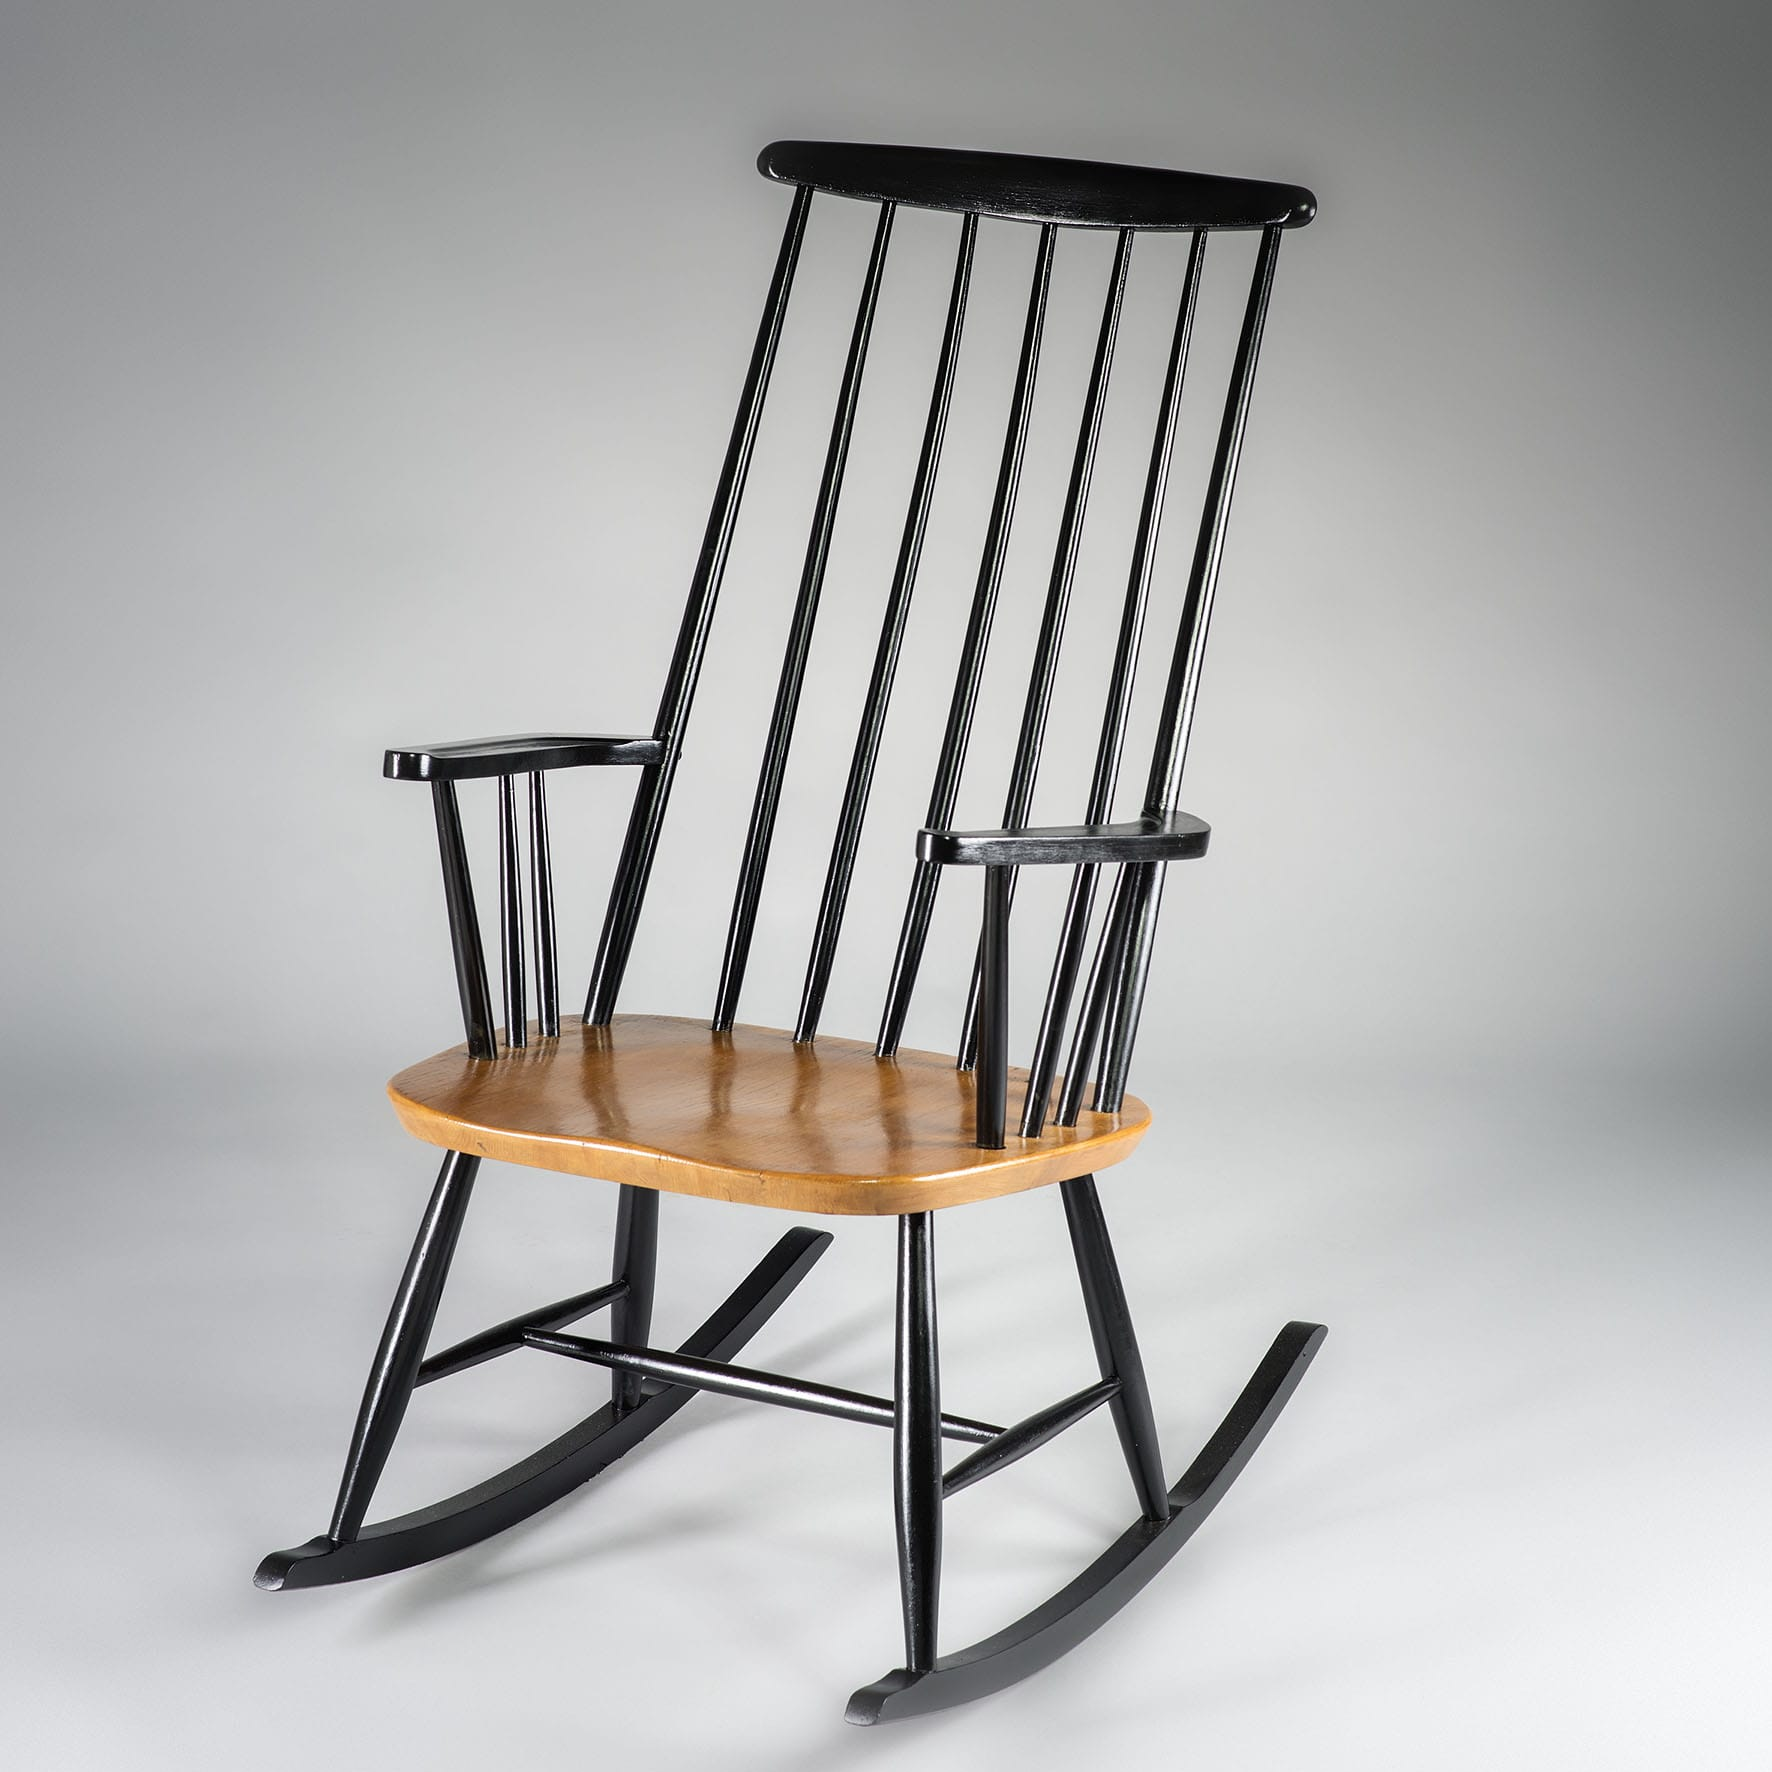 Detroit d wood chair dimension d un rocking chair dimensions of writing des - Rocking chair jardin ...